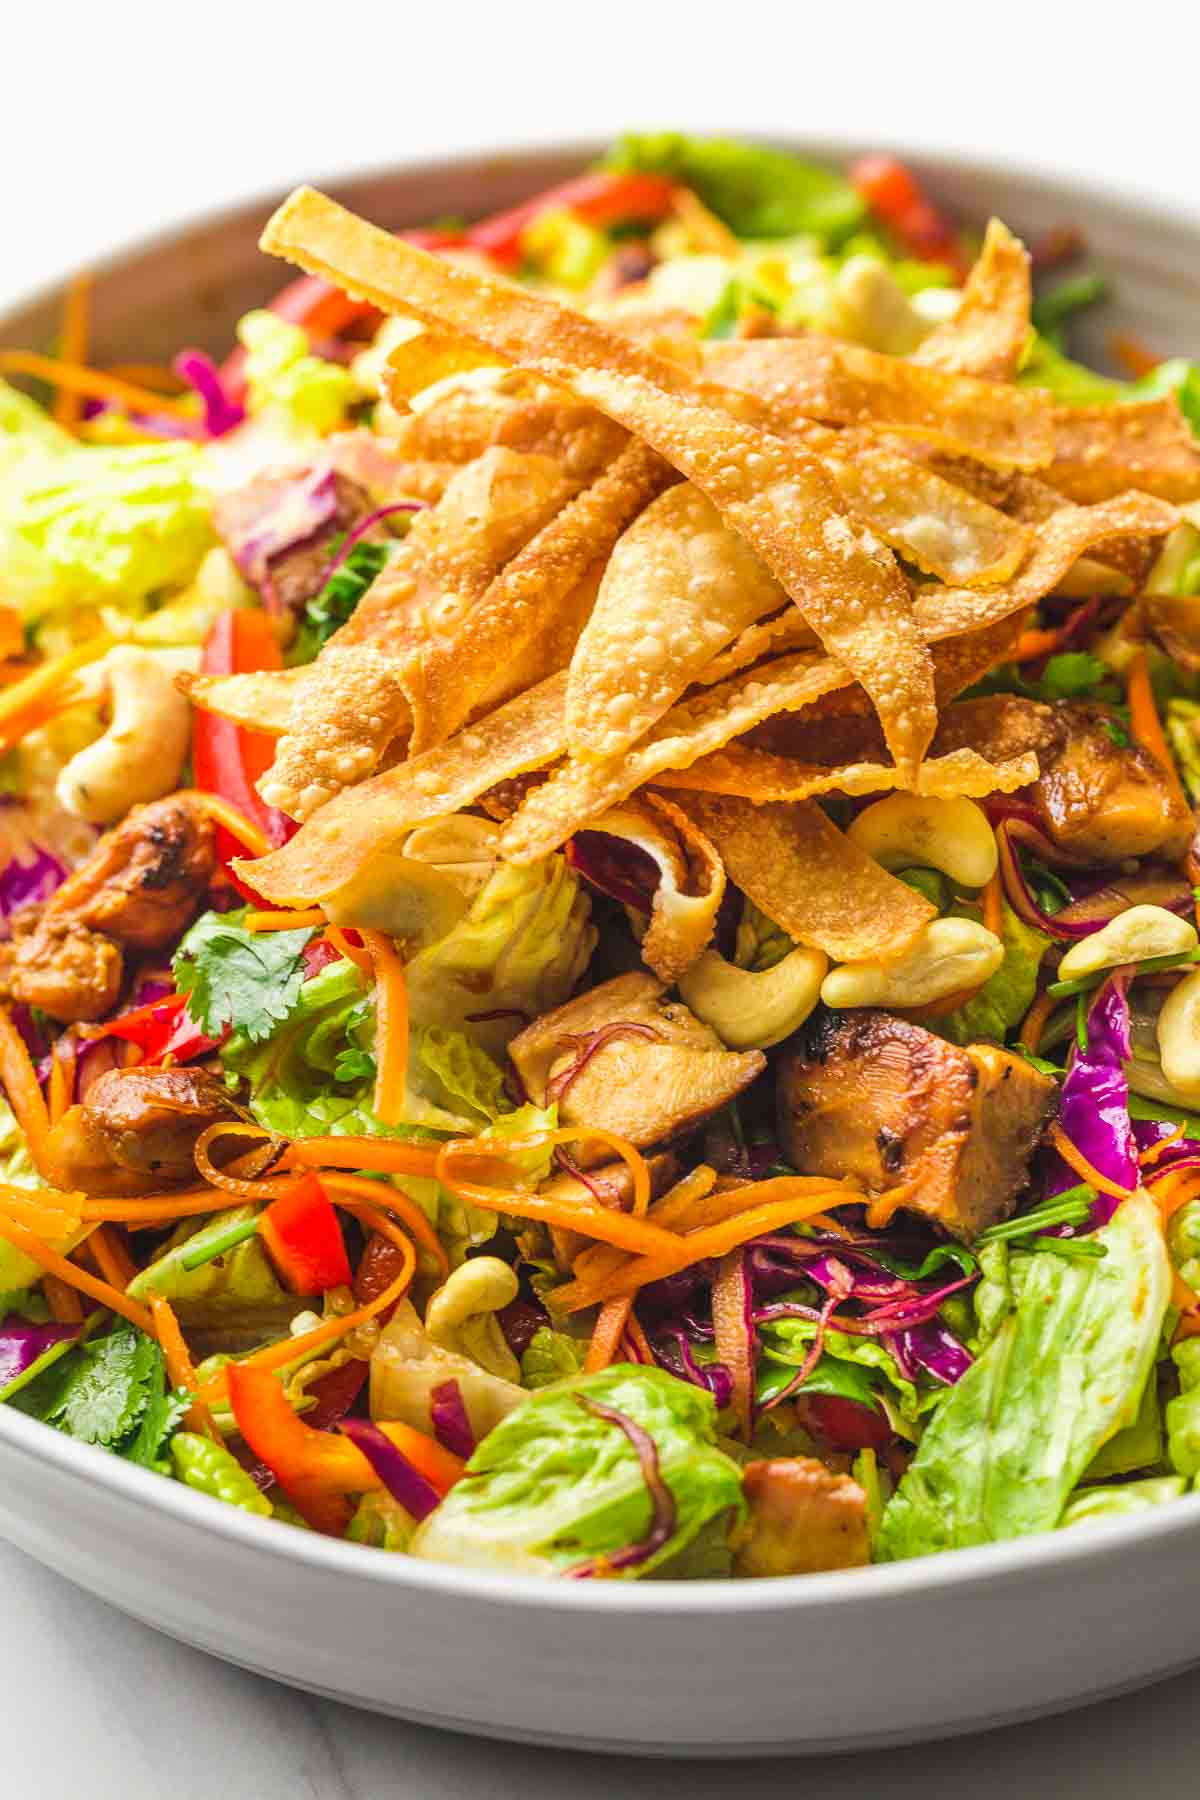 Asian Chicken Salad with homemade Wonton chips served in a large salad bowl